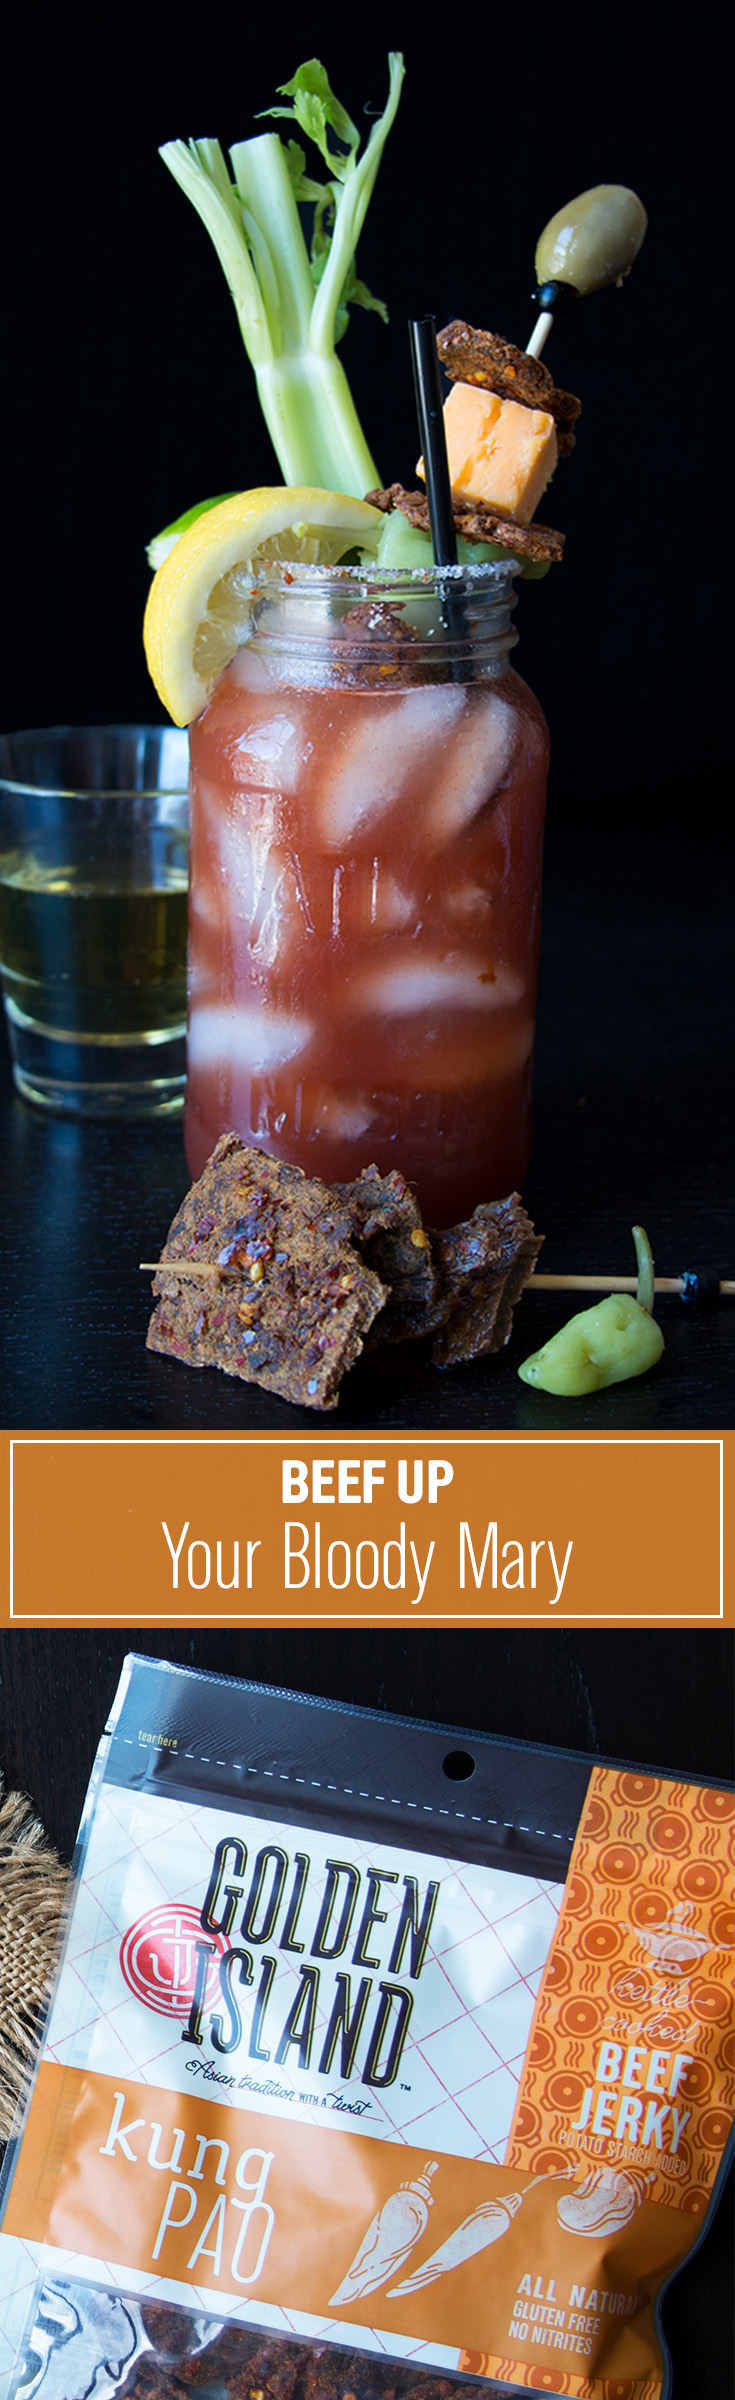 Beef up your Bloody Mary—literally. Garnish the brunch must-have with our Kung Pao Beef Jerky for a subtle Asian take on the classic.   What you'll need: Bloody mary mix and vodka. Garnishes: lemon, lime, celery, cheese, olive, salt, and Kung Pao Golden Island Beef Jerky.